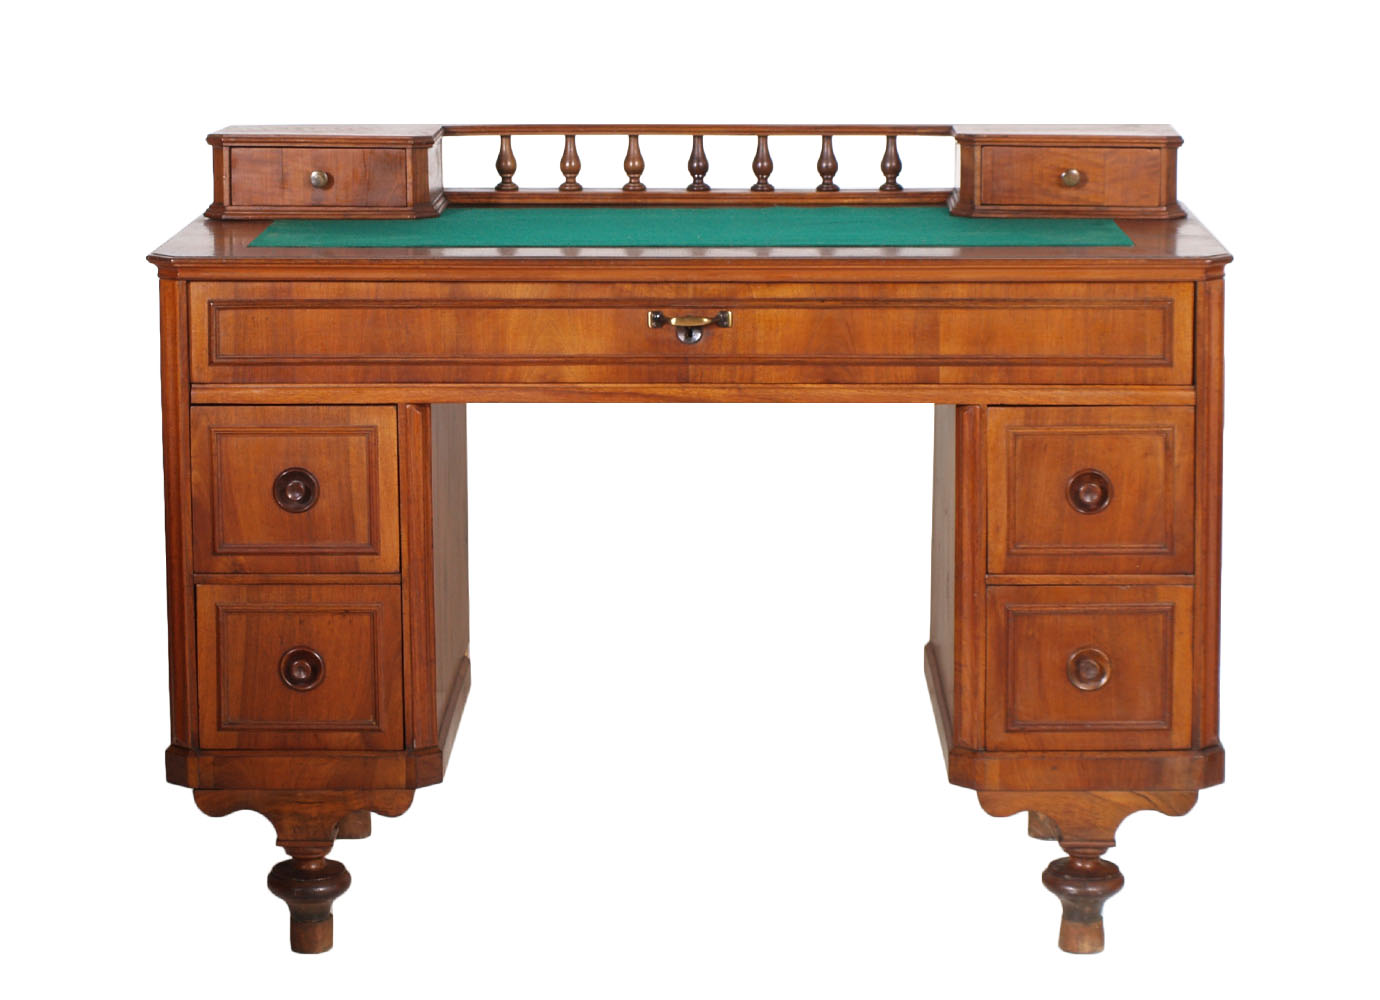 WRITING DESK 19TH C. ANTICO SCRITTOIO SCRIVANIA FINE 800 IN NOCE BIONDO ...